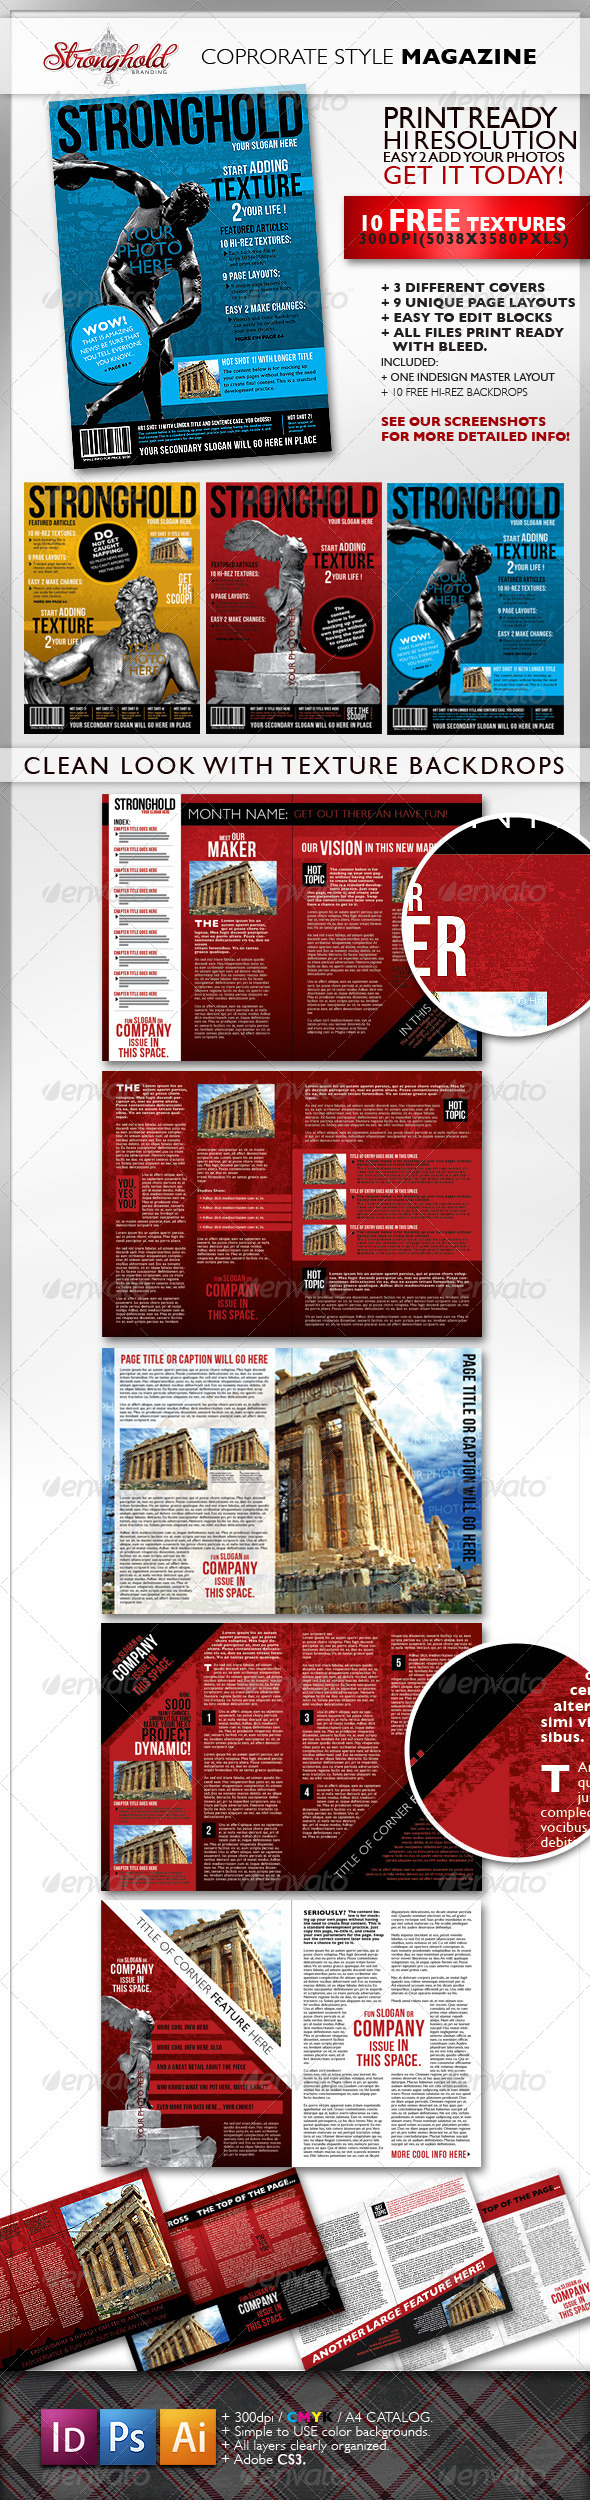 Textured Corporate Magazine Template - Magazines Print Templates